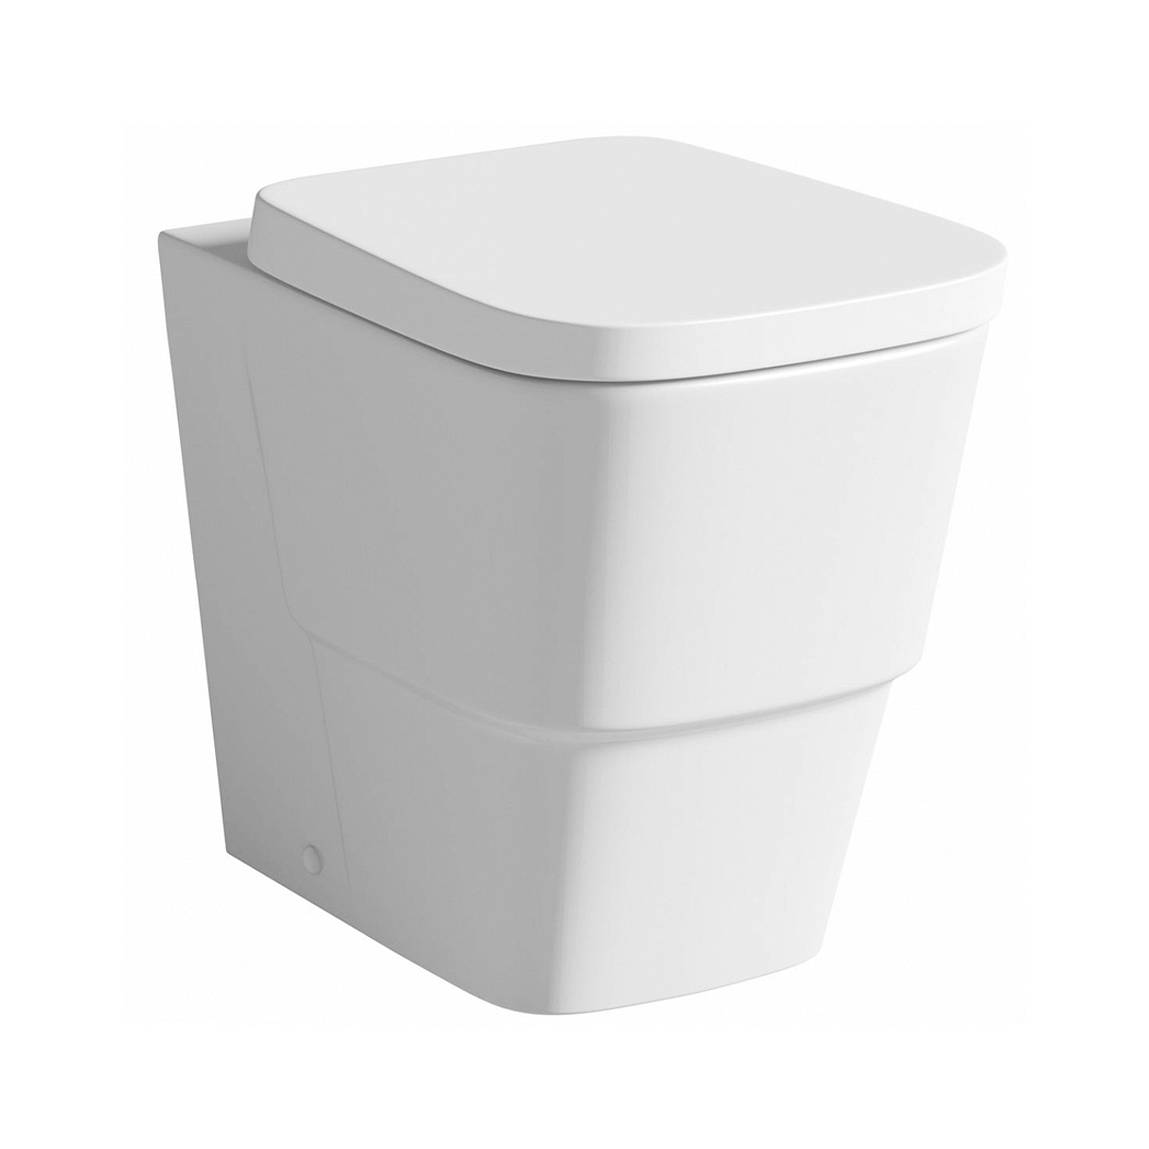 Image of Princeton Back to Wall Toilet inc Luxury Soft Close Seat